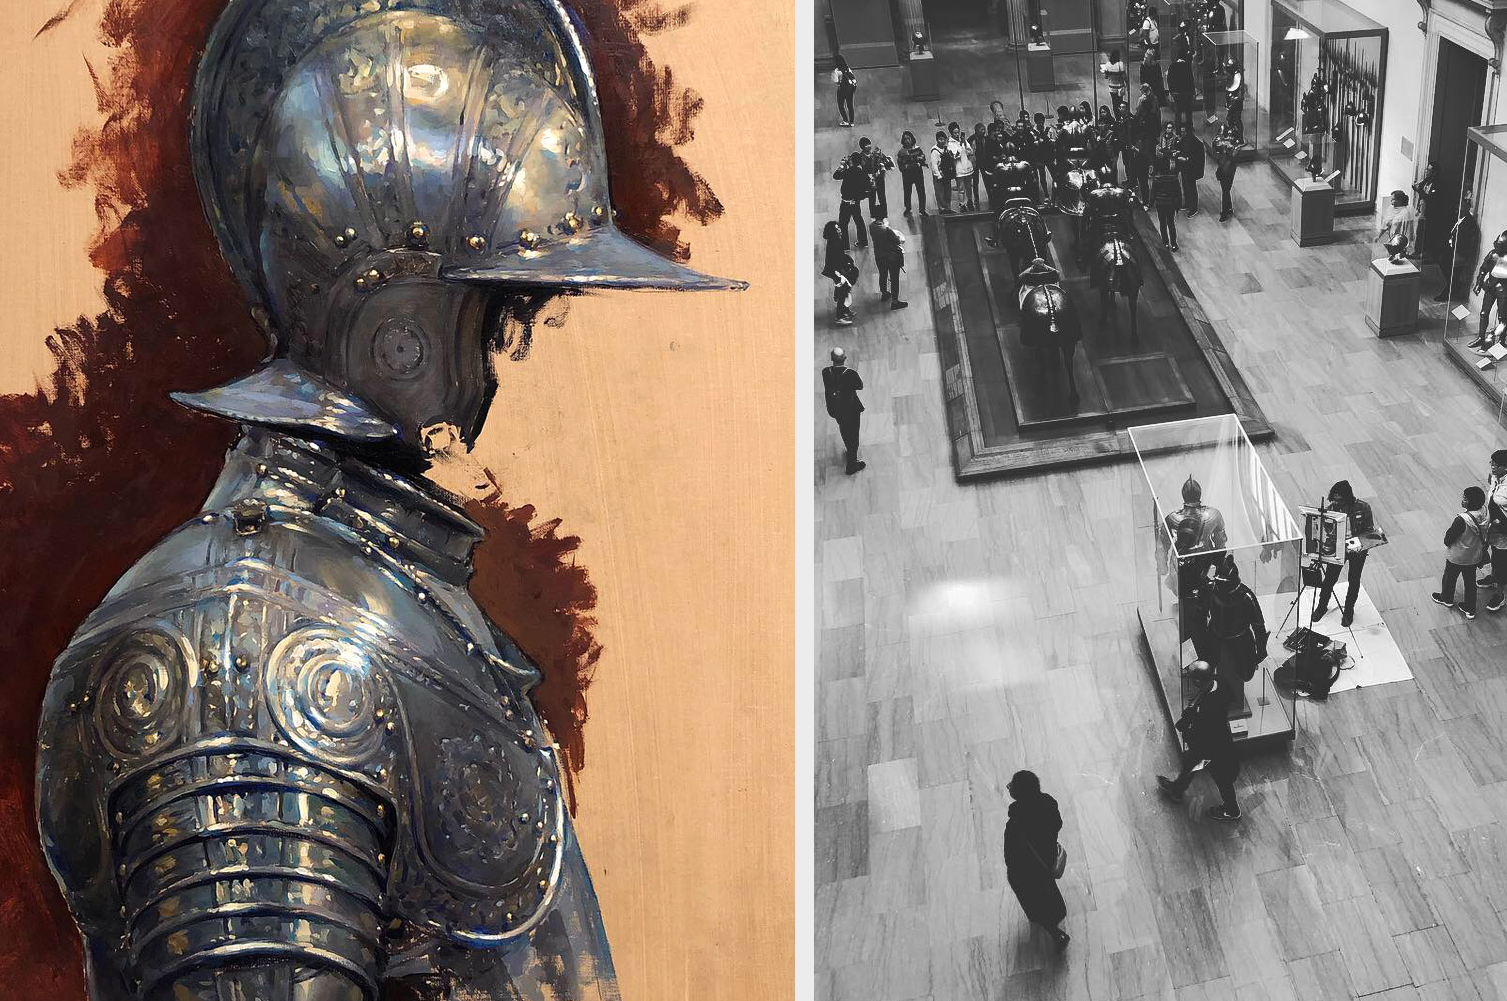 [Infantry Armor | study from the Metropolitan Museum of Art in NYC - 2018 | photo credit to  J.F. Mazur ]